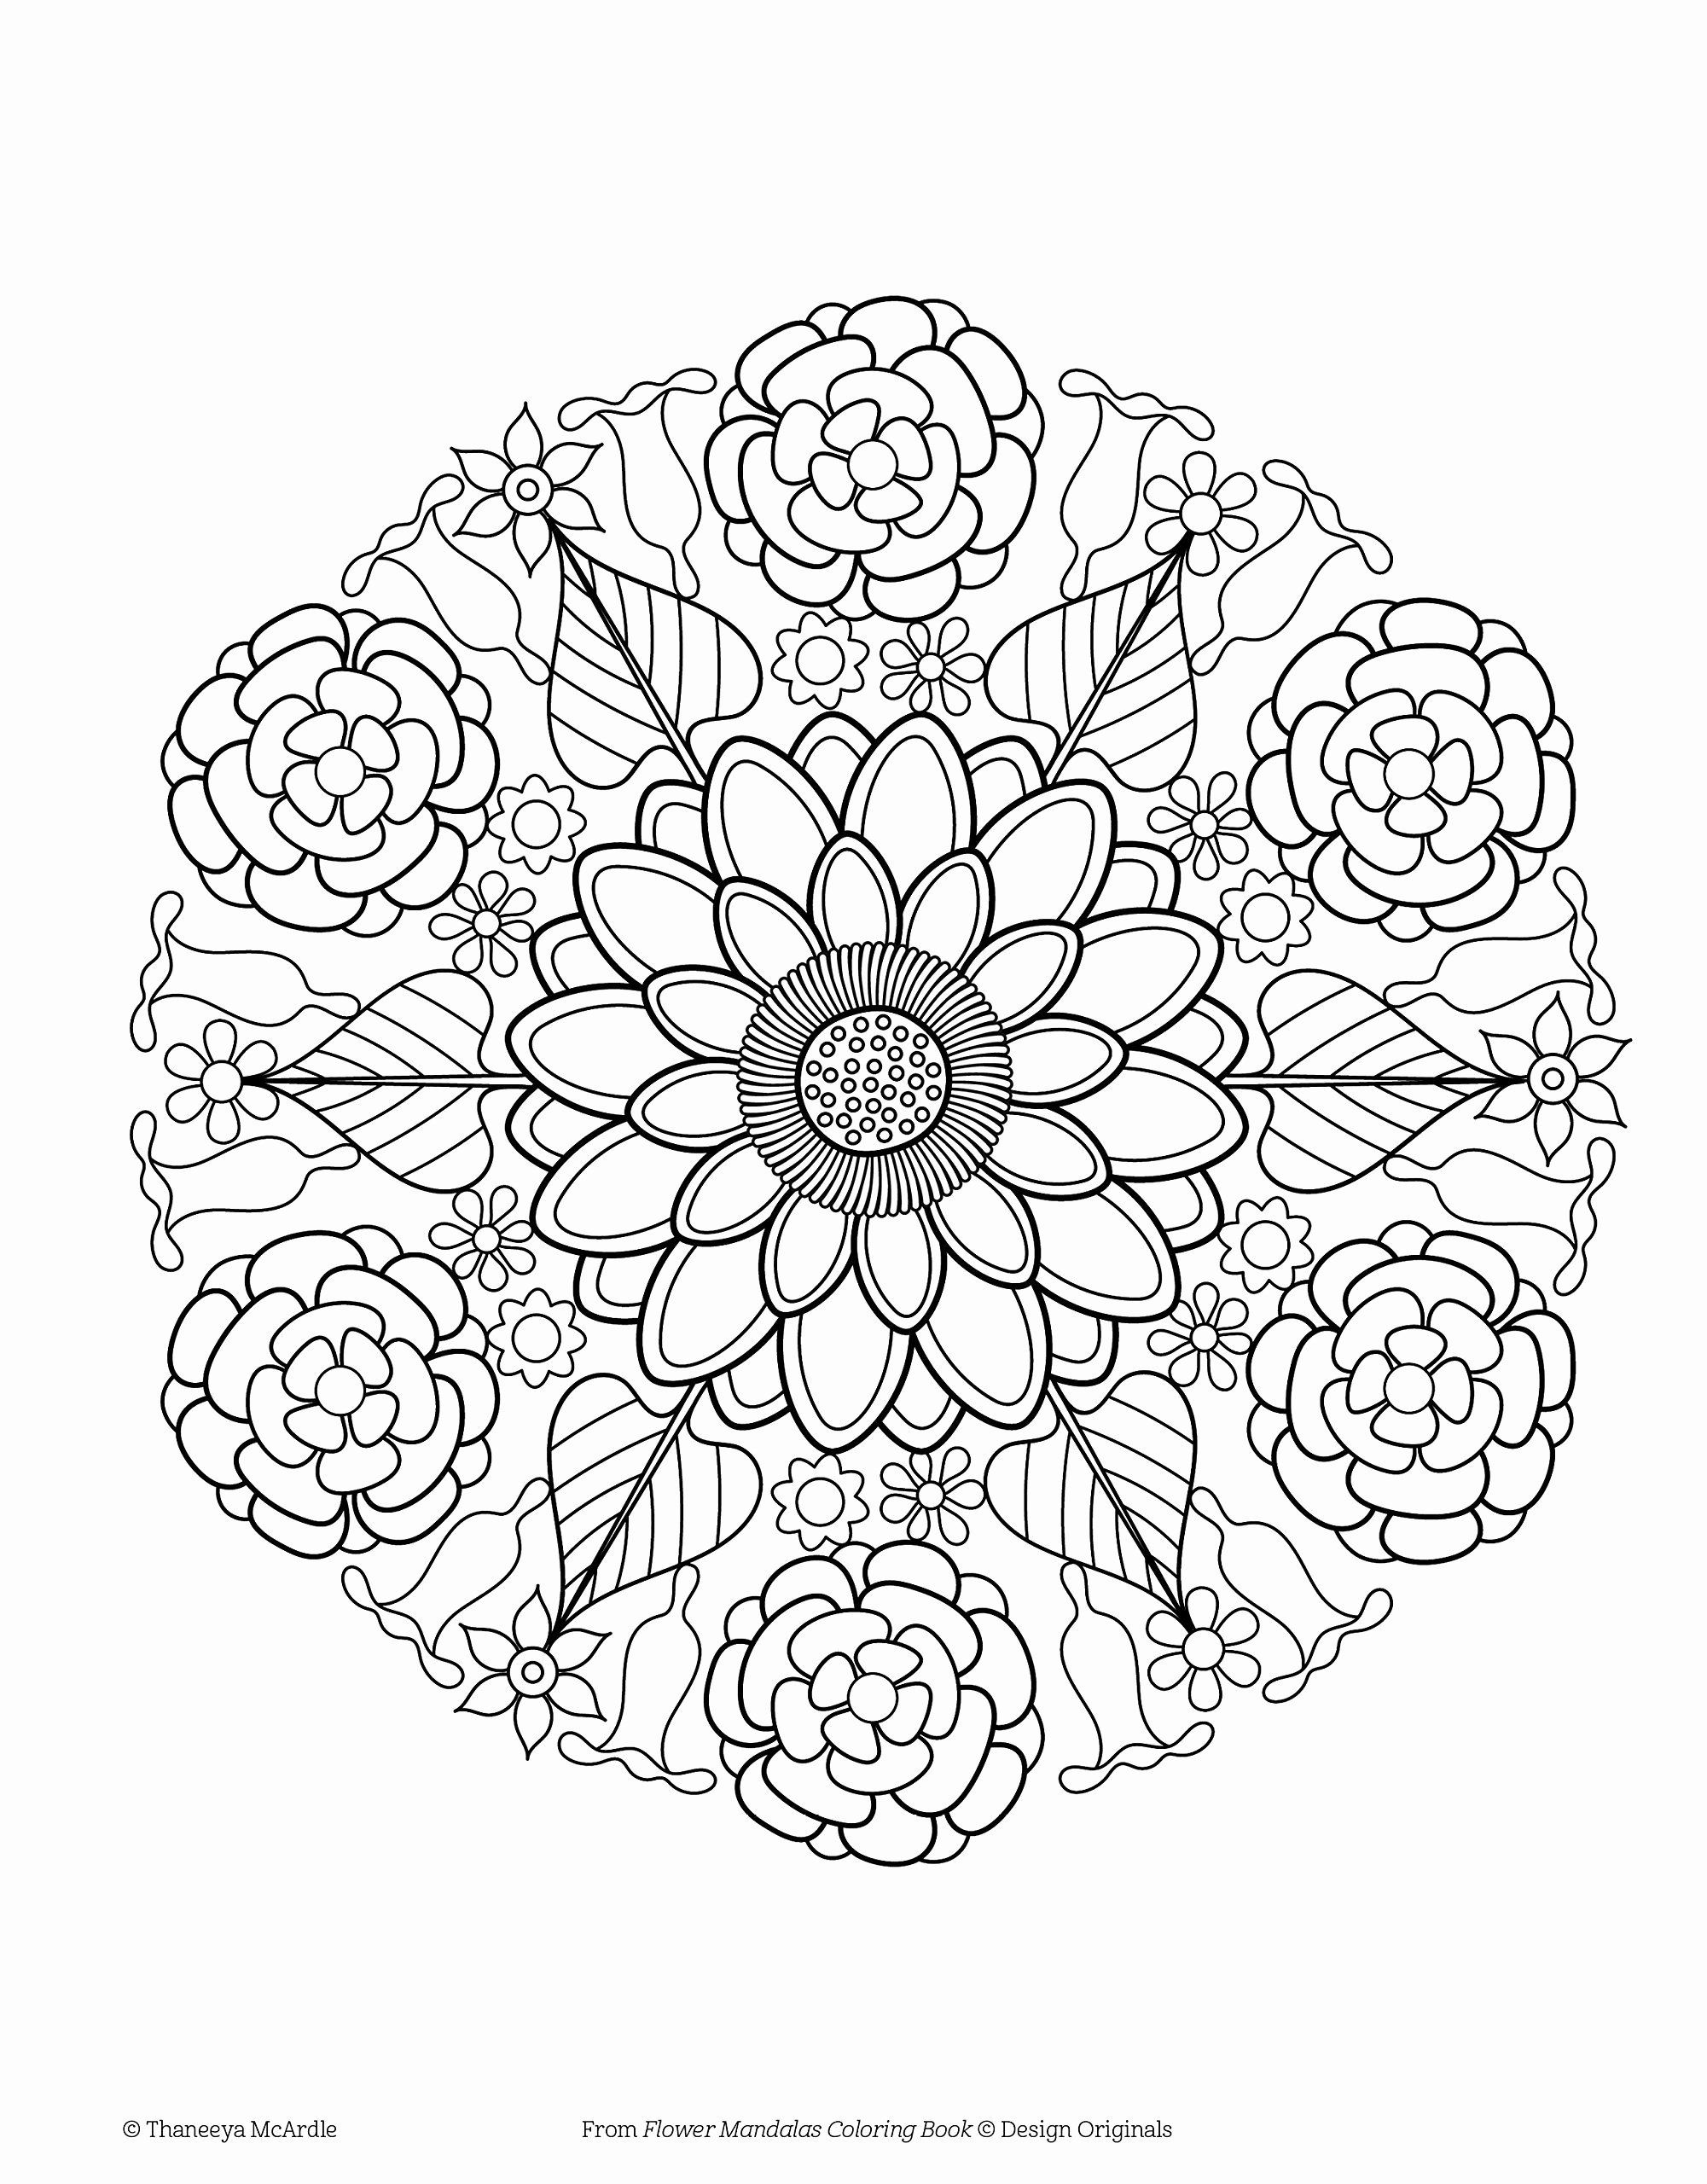 Coloring Meditation Design Best Of the Artful Mandala ...